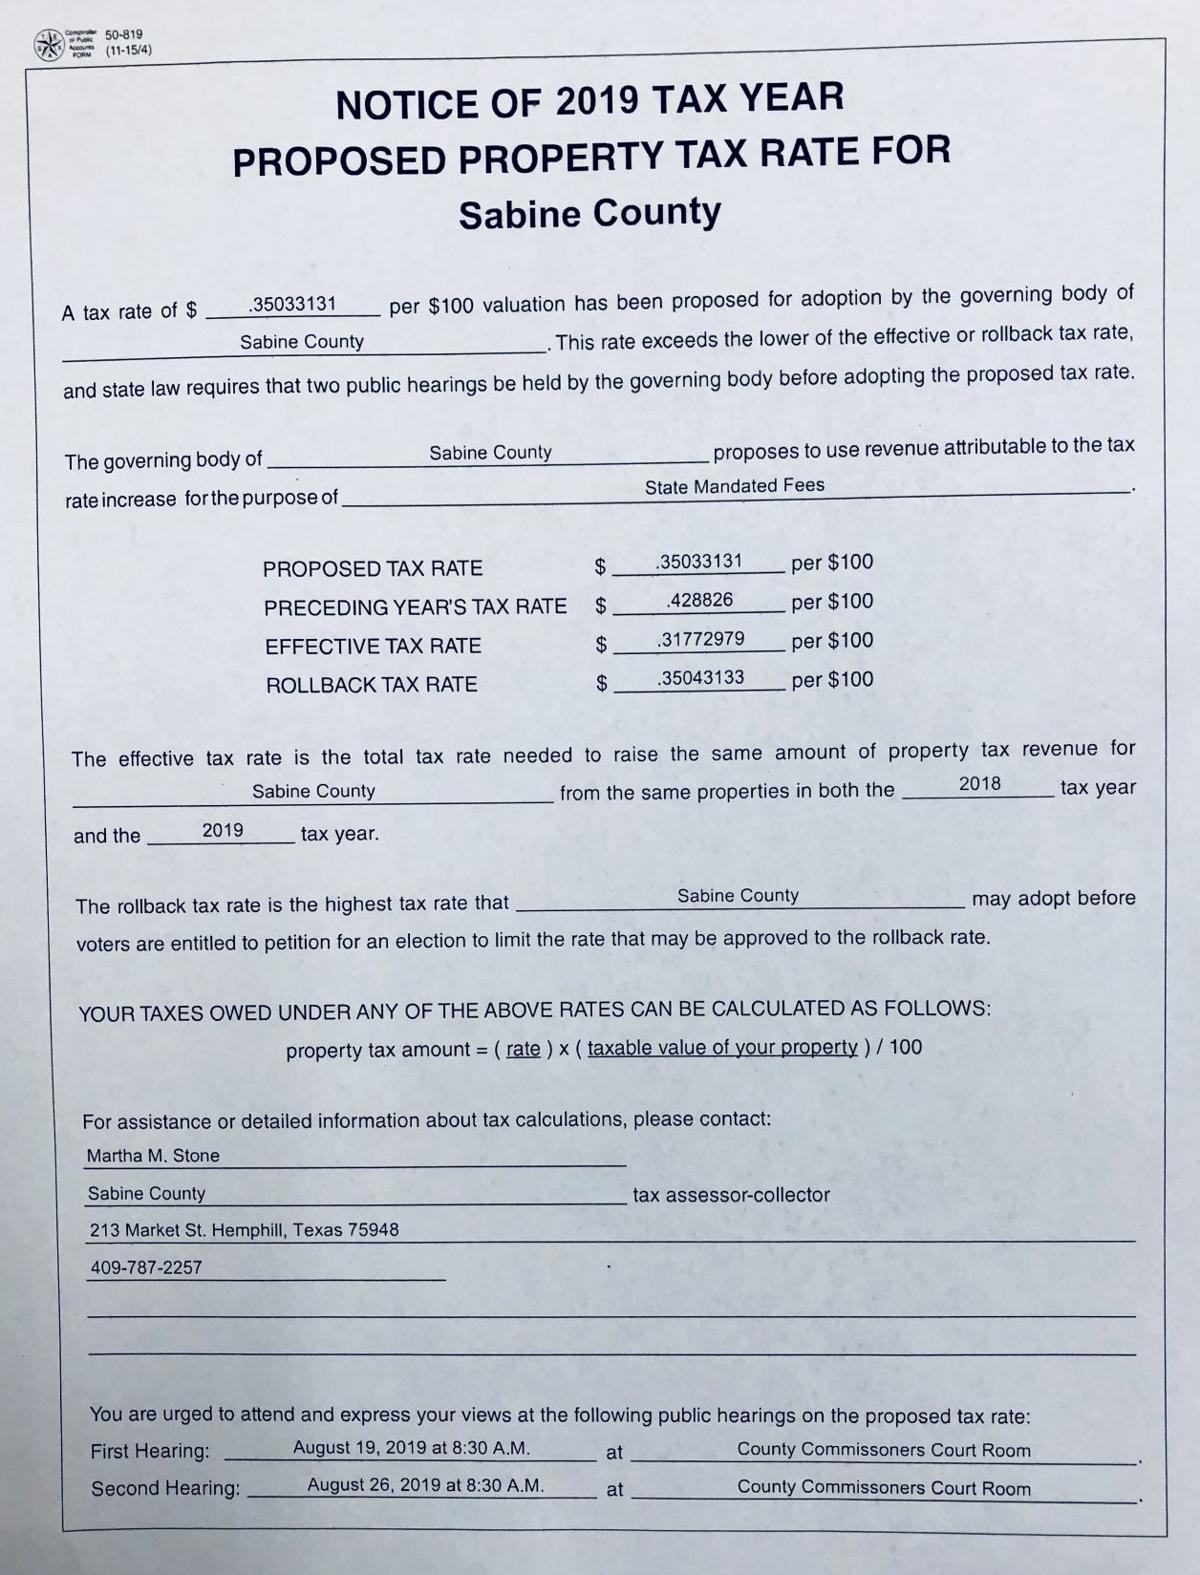 Sabine County proposed property tax rate for 2019